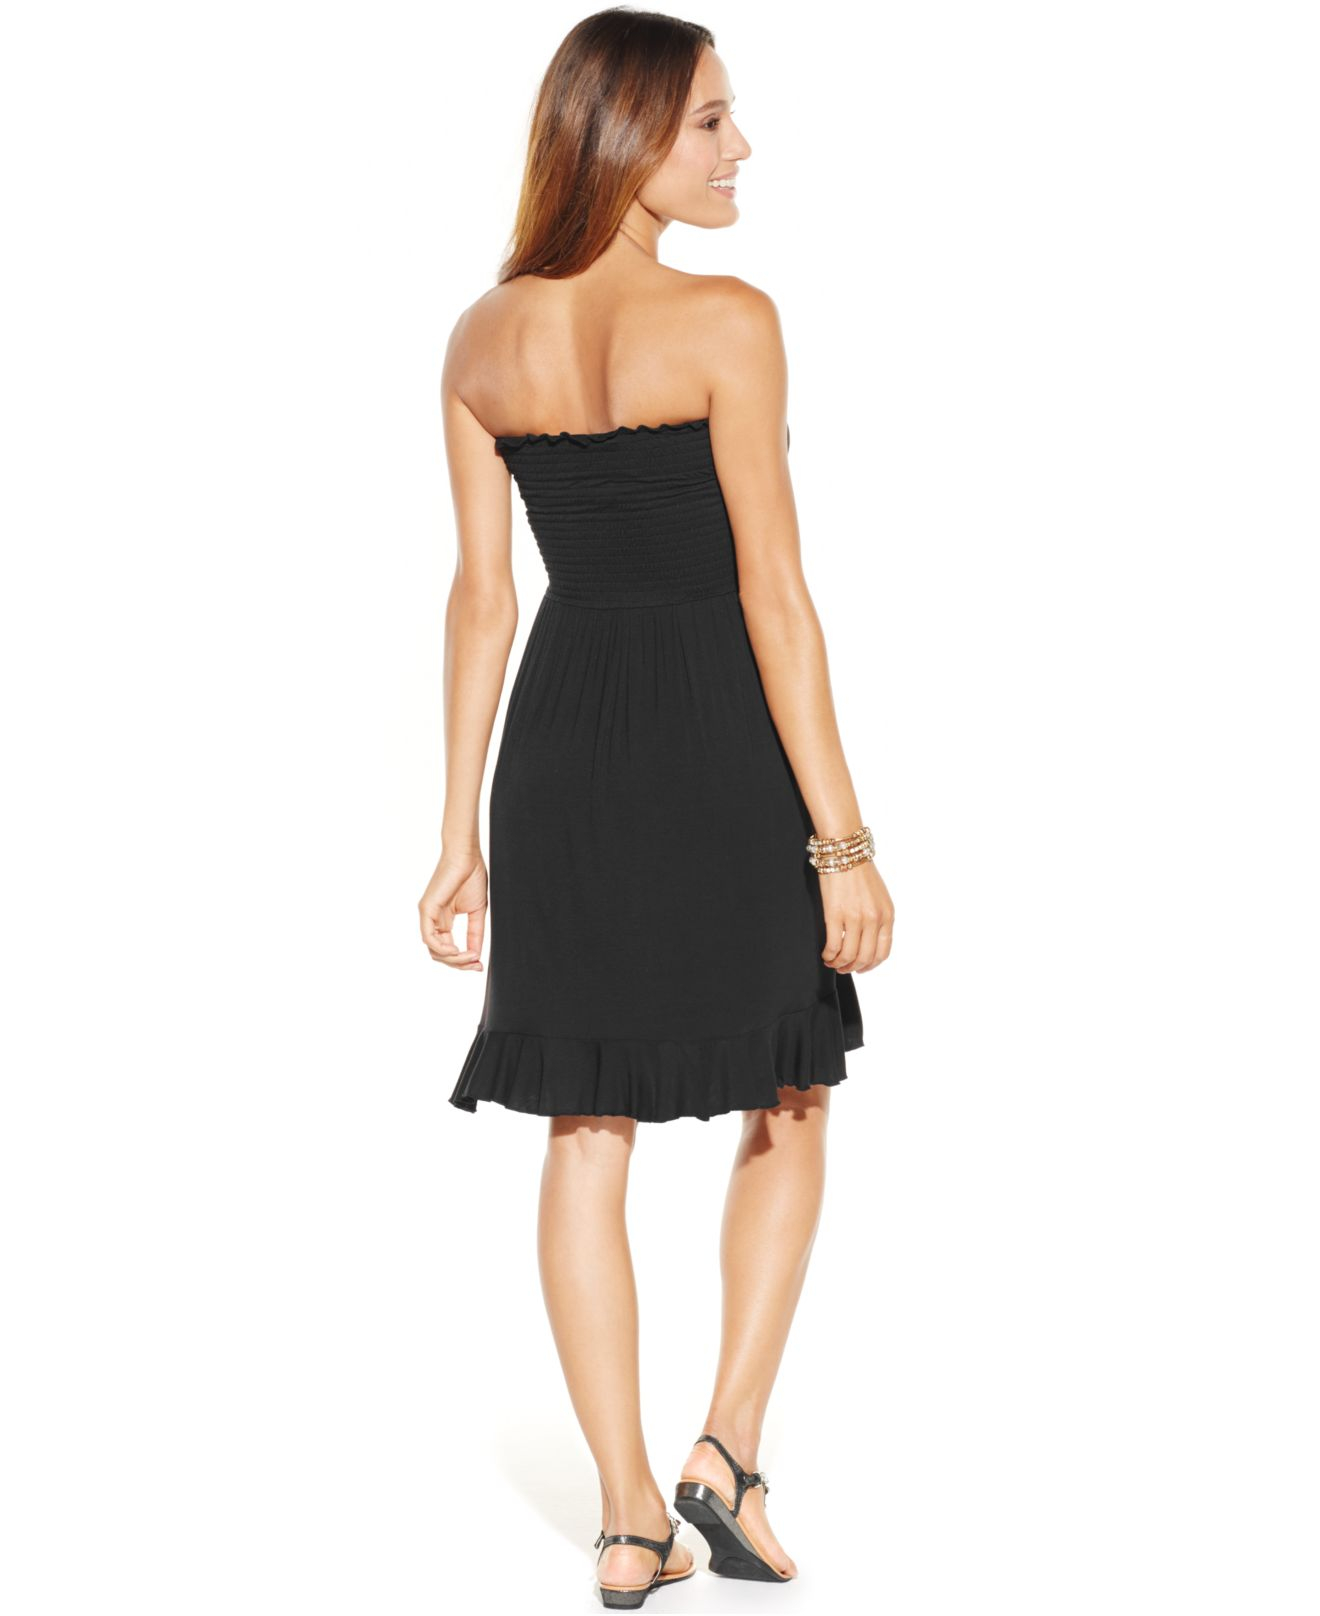 700f1faff6354 Lyst - Dotti Smocked Cover Up Dress in Black